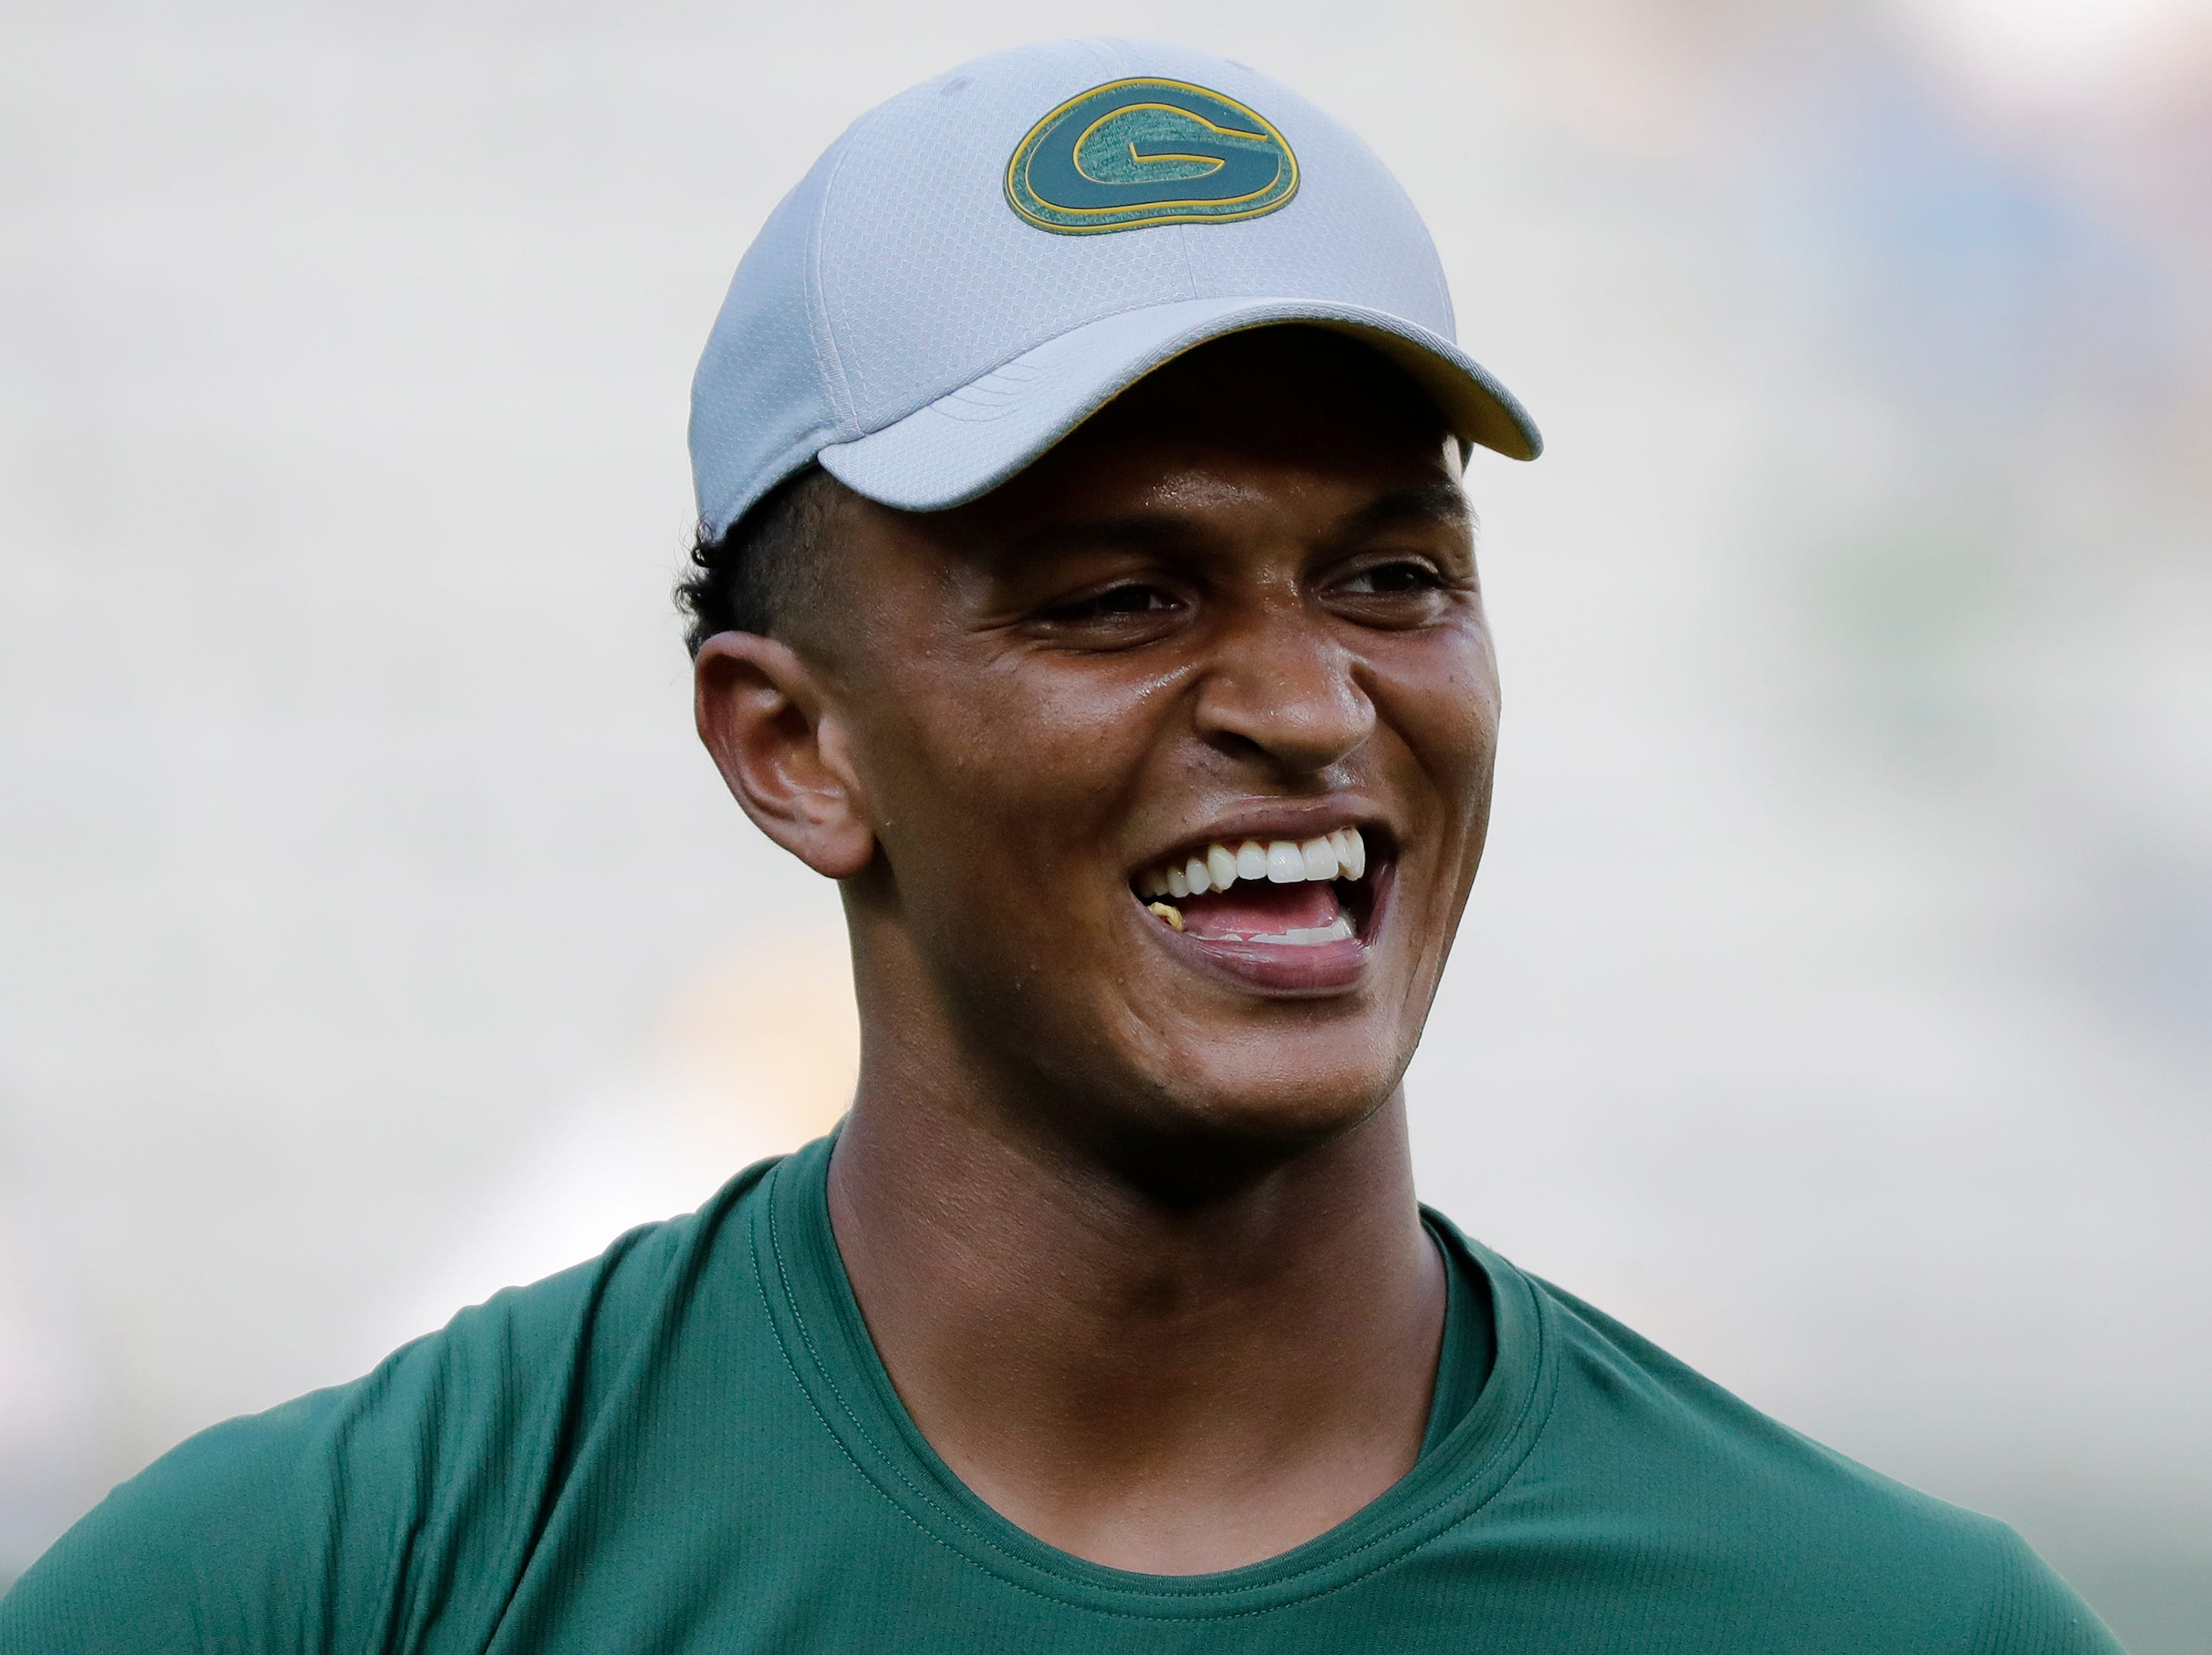 Green Bay Packers quarterback DeShone Kizer (9) warms up before a NFL preseason game at Lambeau Field on Thursday, August 9, 2018 in Green Bay, Wis.